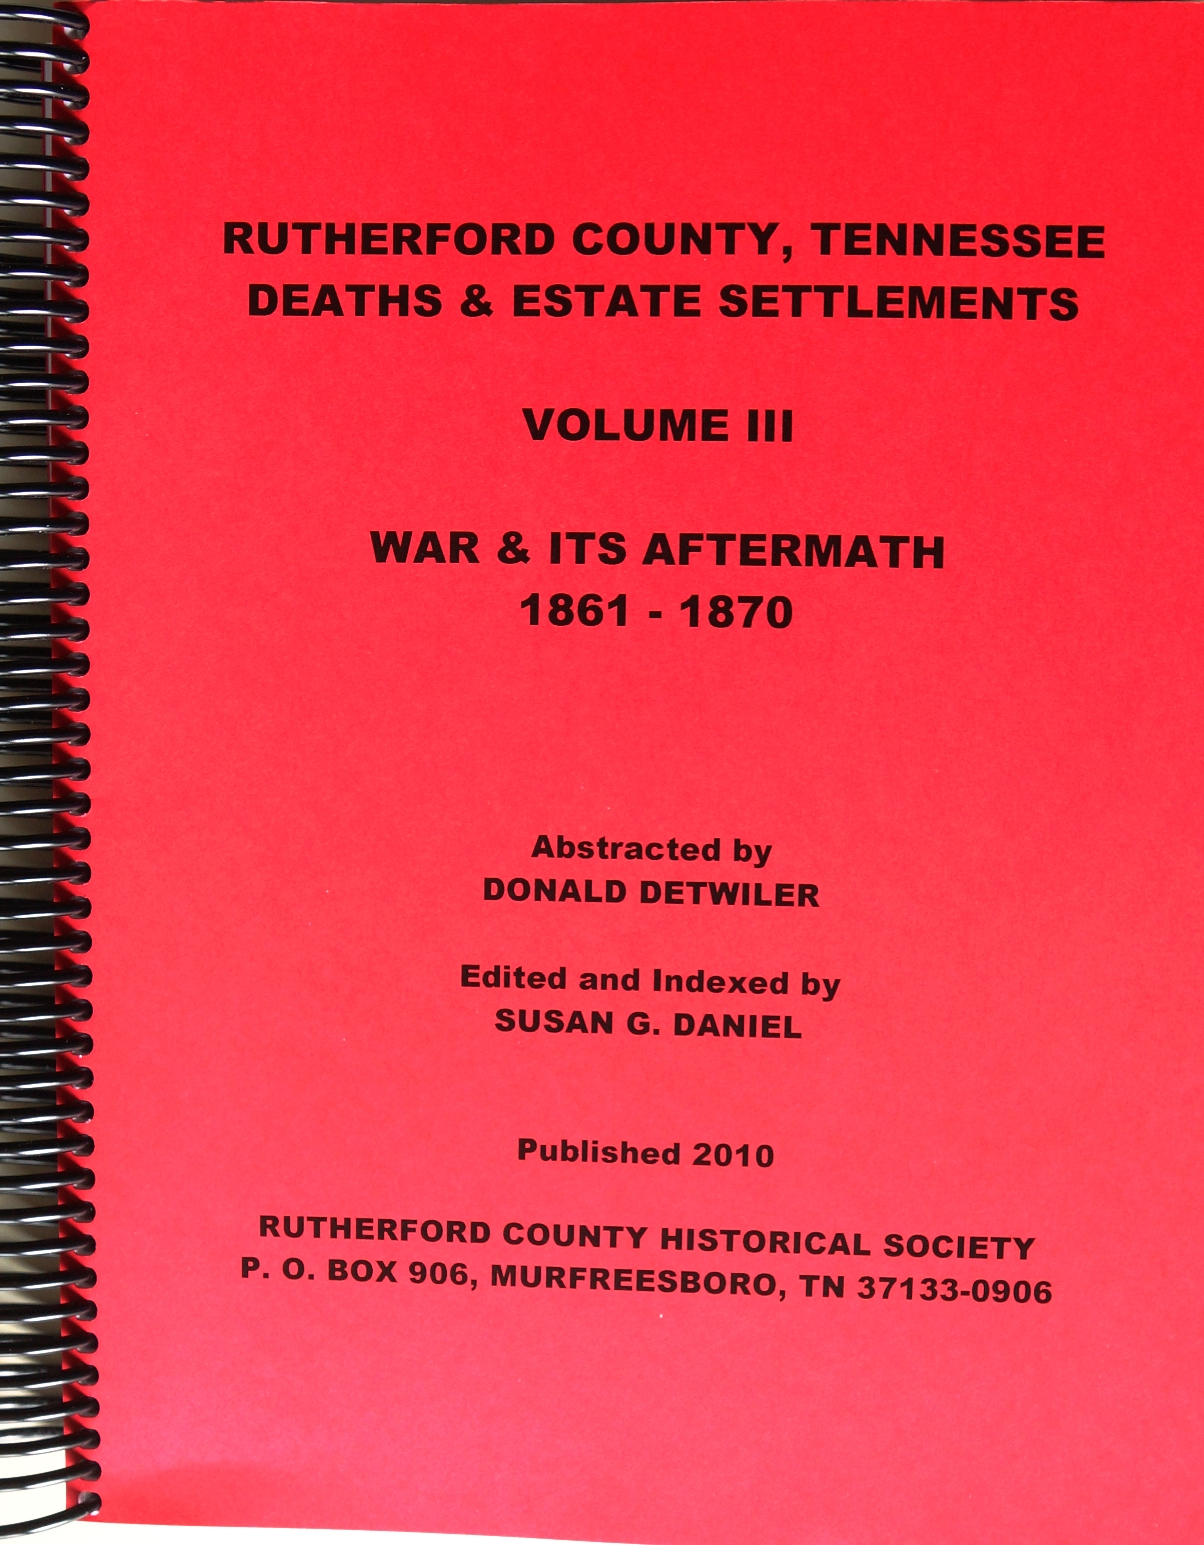 Tennessee rutherford county lascassas - Publication 65 Rutherford County Tennessee Deaths Estate Settlements Volume Iii 1861 1870 Compiled By Donald Detwiler And Edited And Indexed By Susan